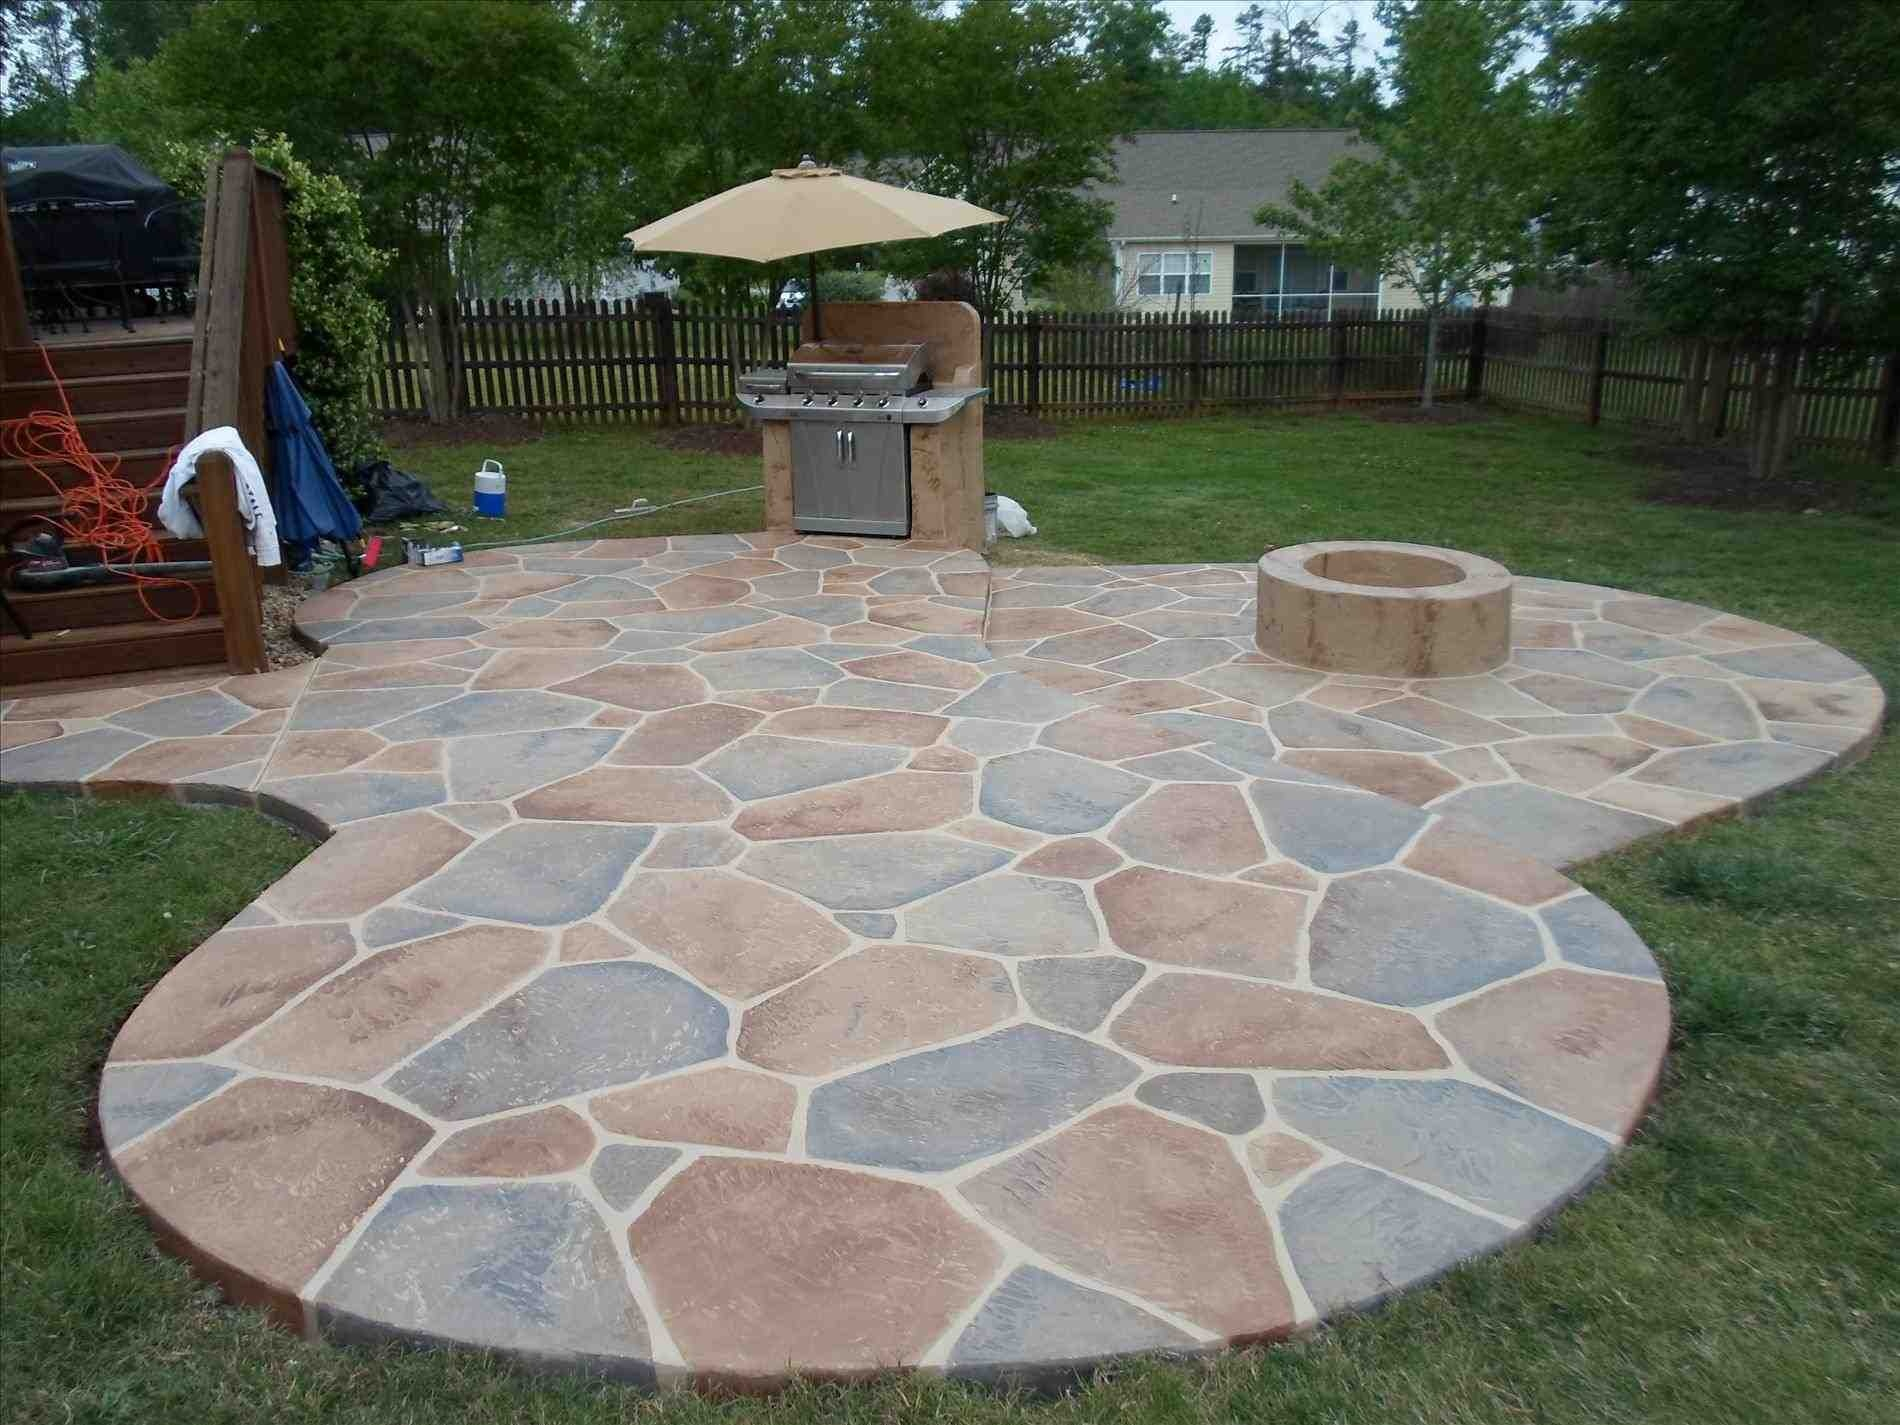 Backyard Stamped Concrete Patio Ideas On A Budget Design Idea And within Backyard Concrete Ideas